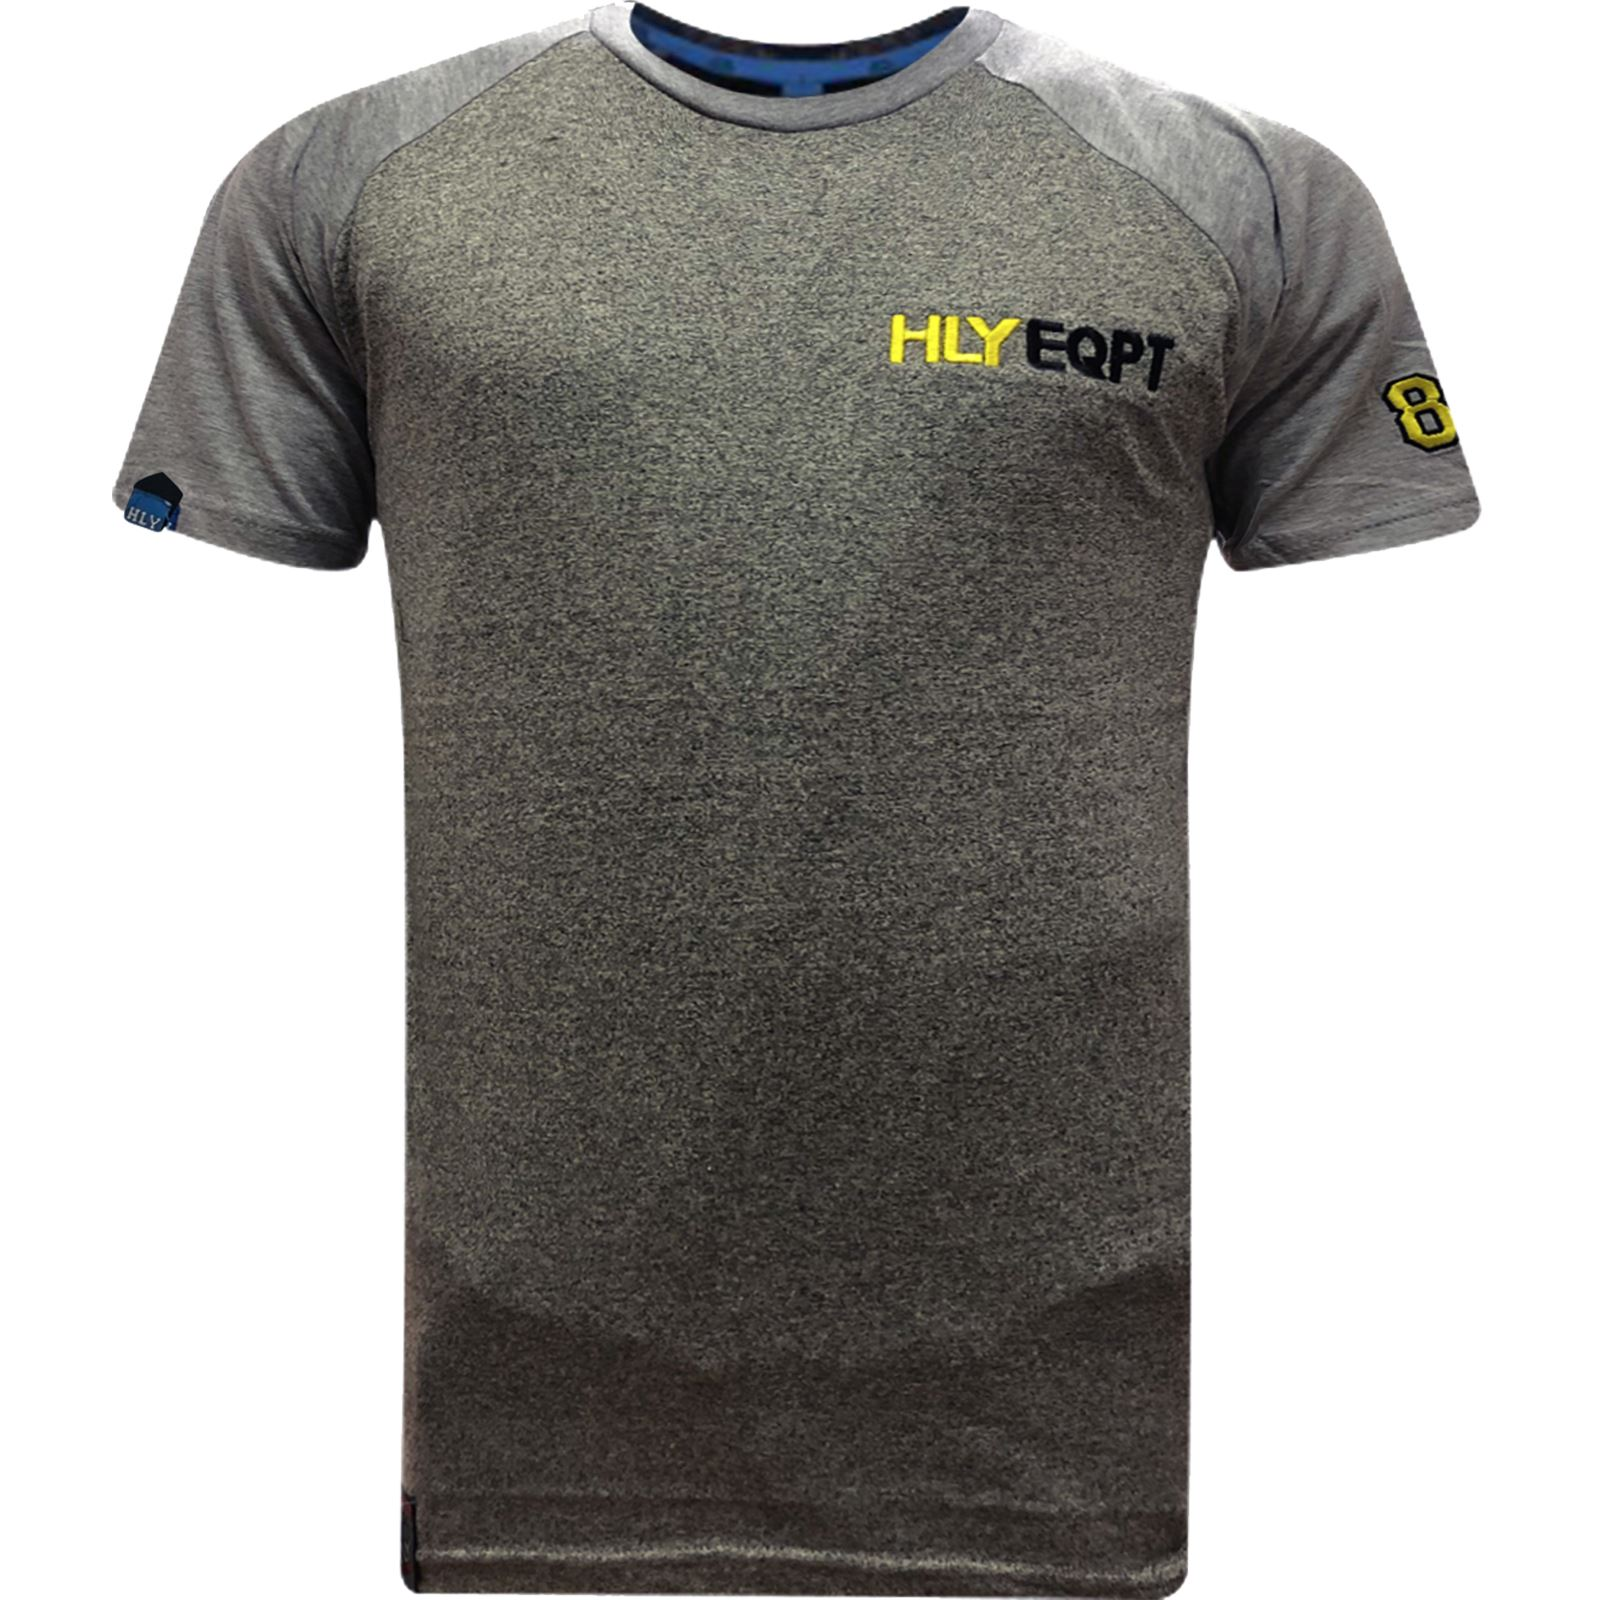 Mens-HLY-EQPT-Printed-T-Shirt-100-Cotton-Gym-Athletic-Training-Tee-Top-Summer thumbnail 32